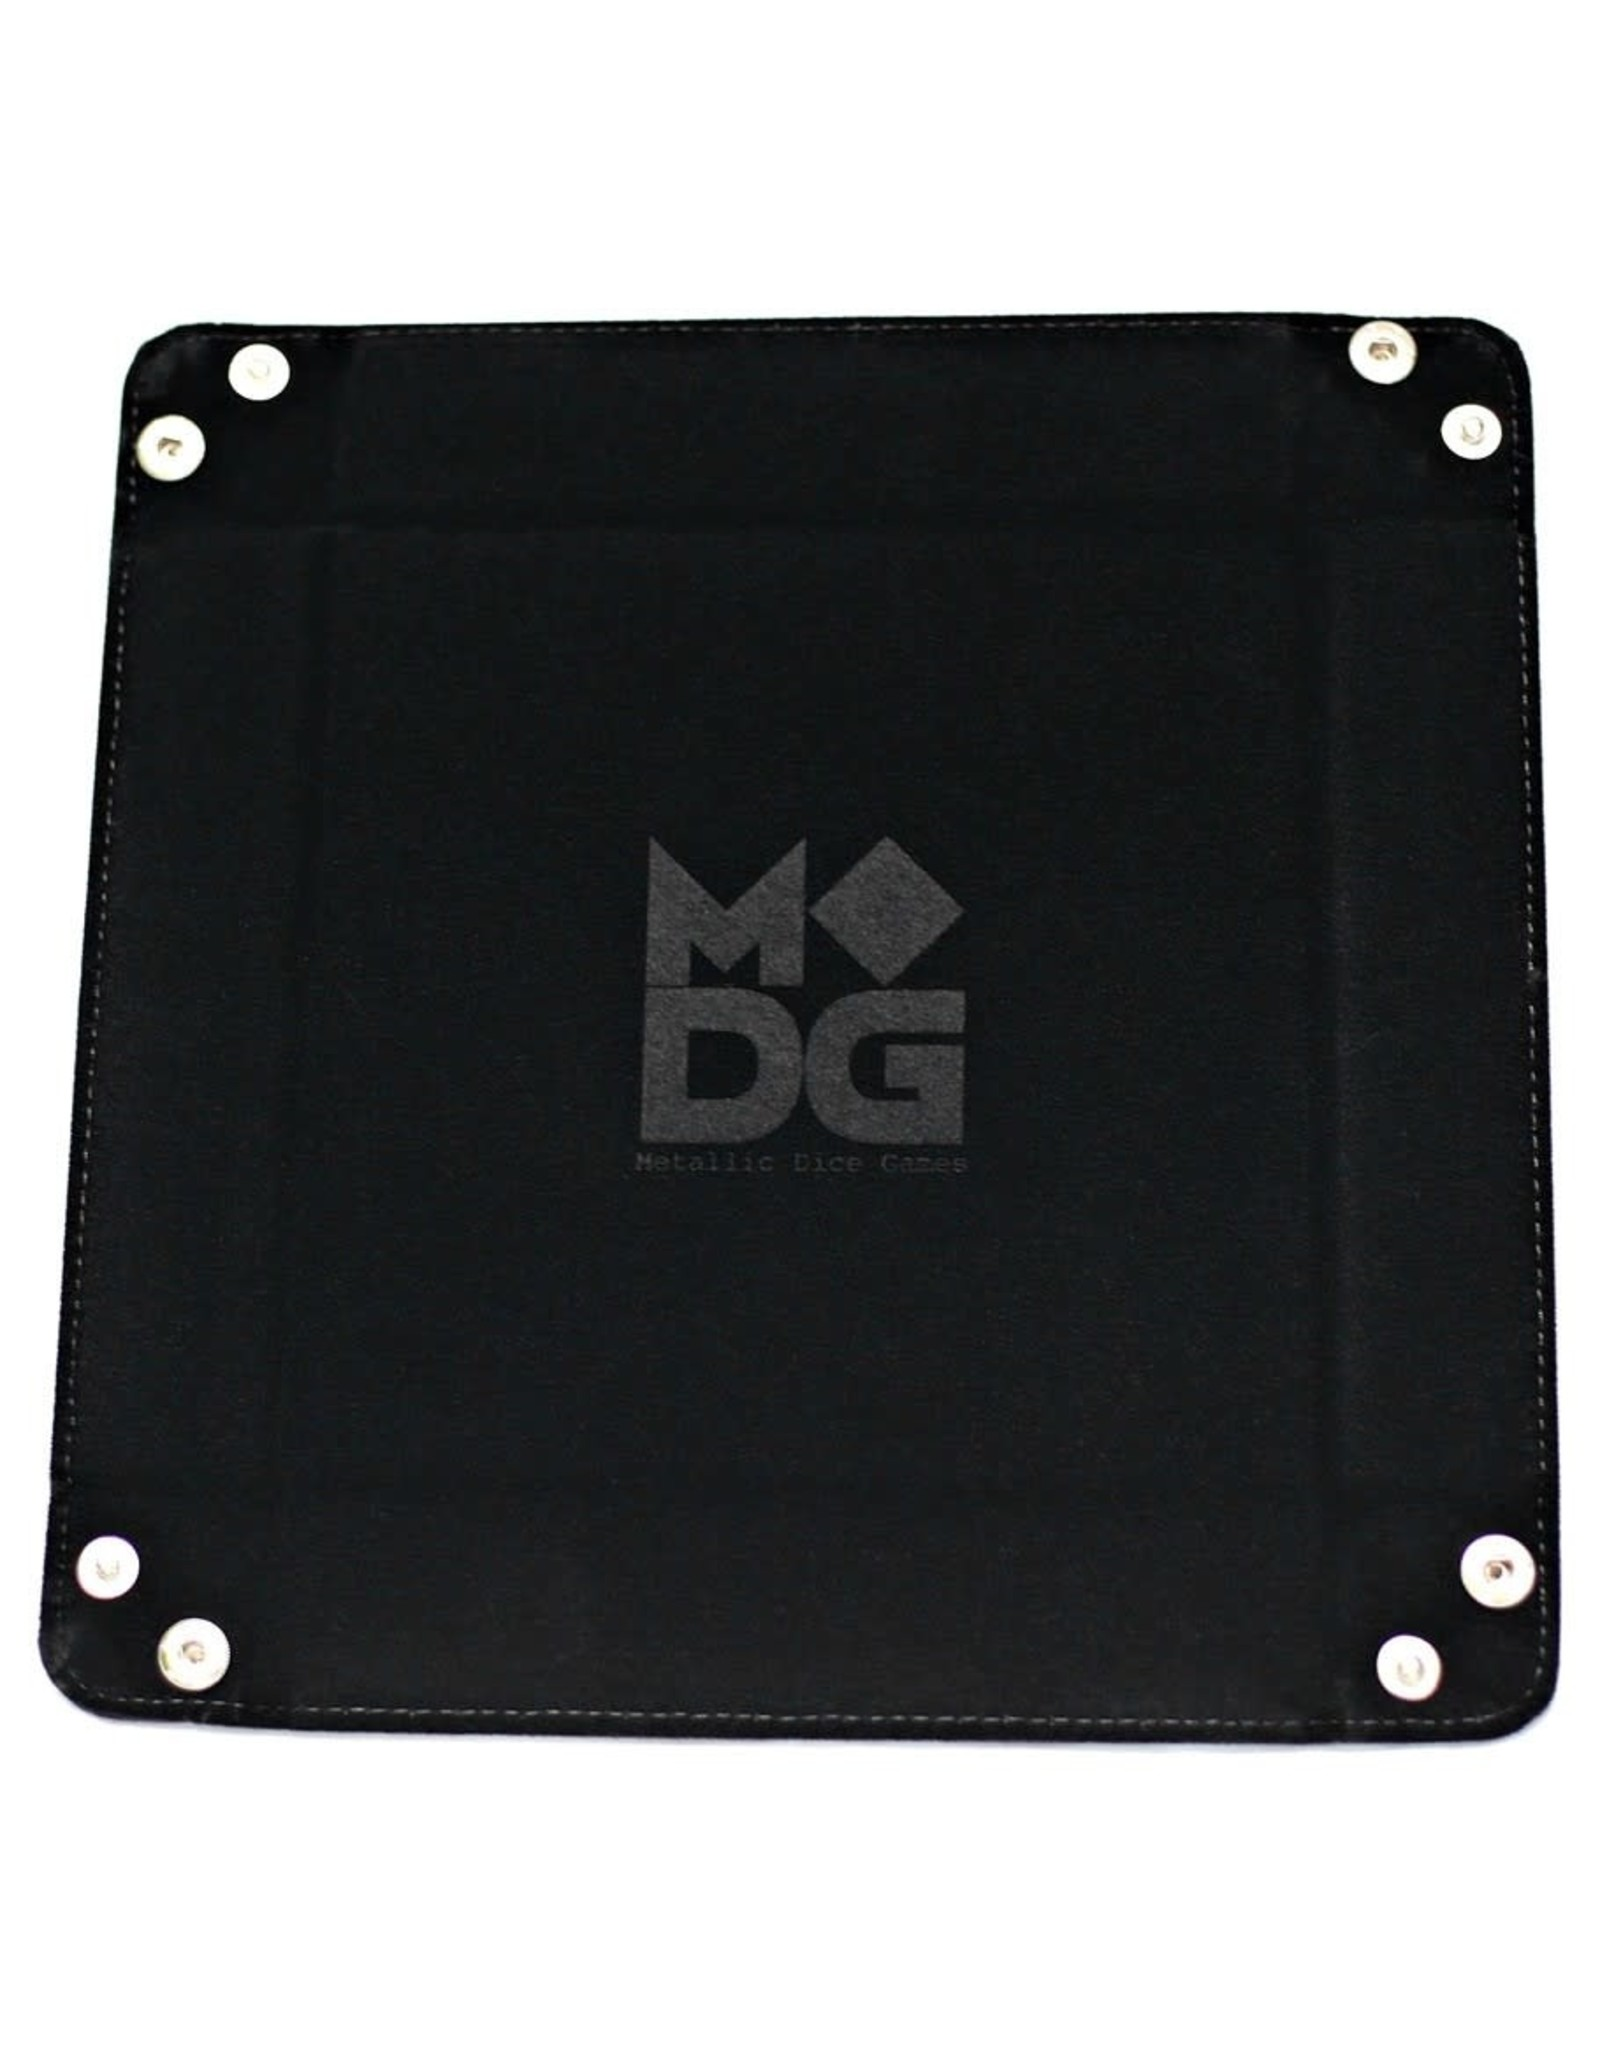 Metallic Dice Games LLC Velvet Folding Dice Tray: Black